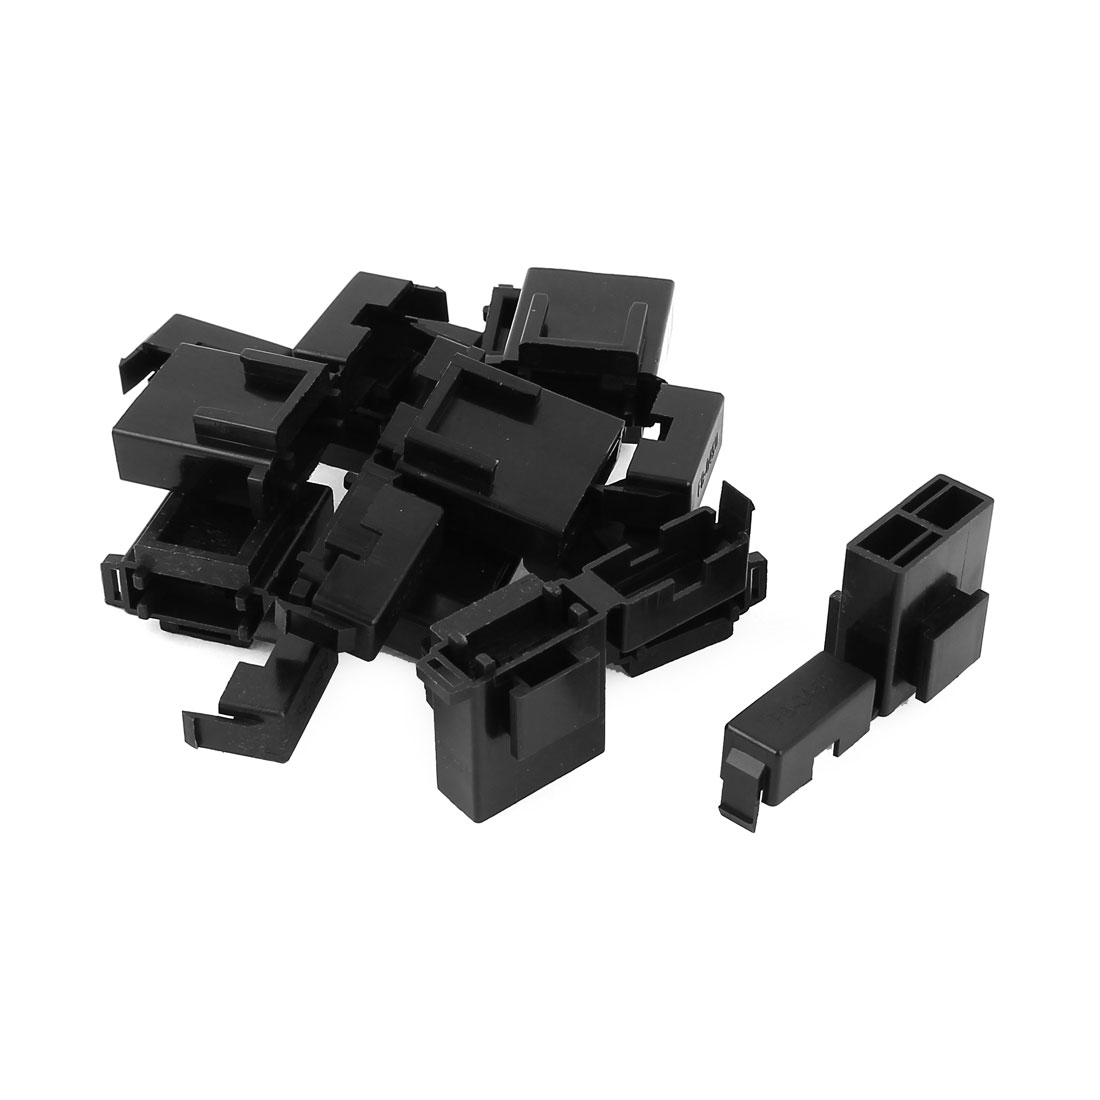 Auto Car Truck Vane Fuse Terminal Block Box Holder Black BX2017 10 Pcs